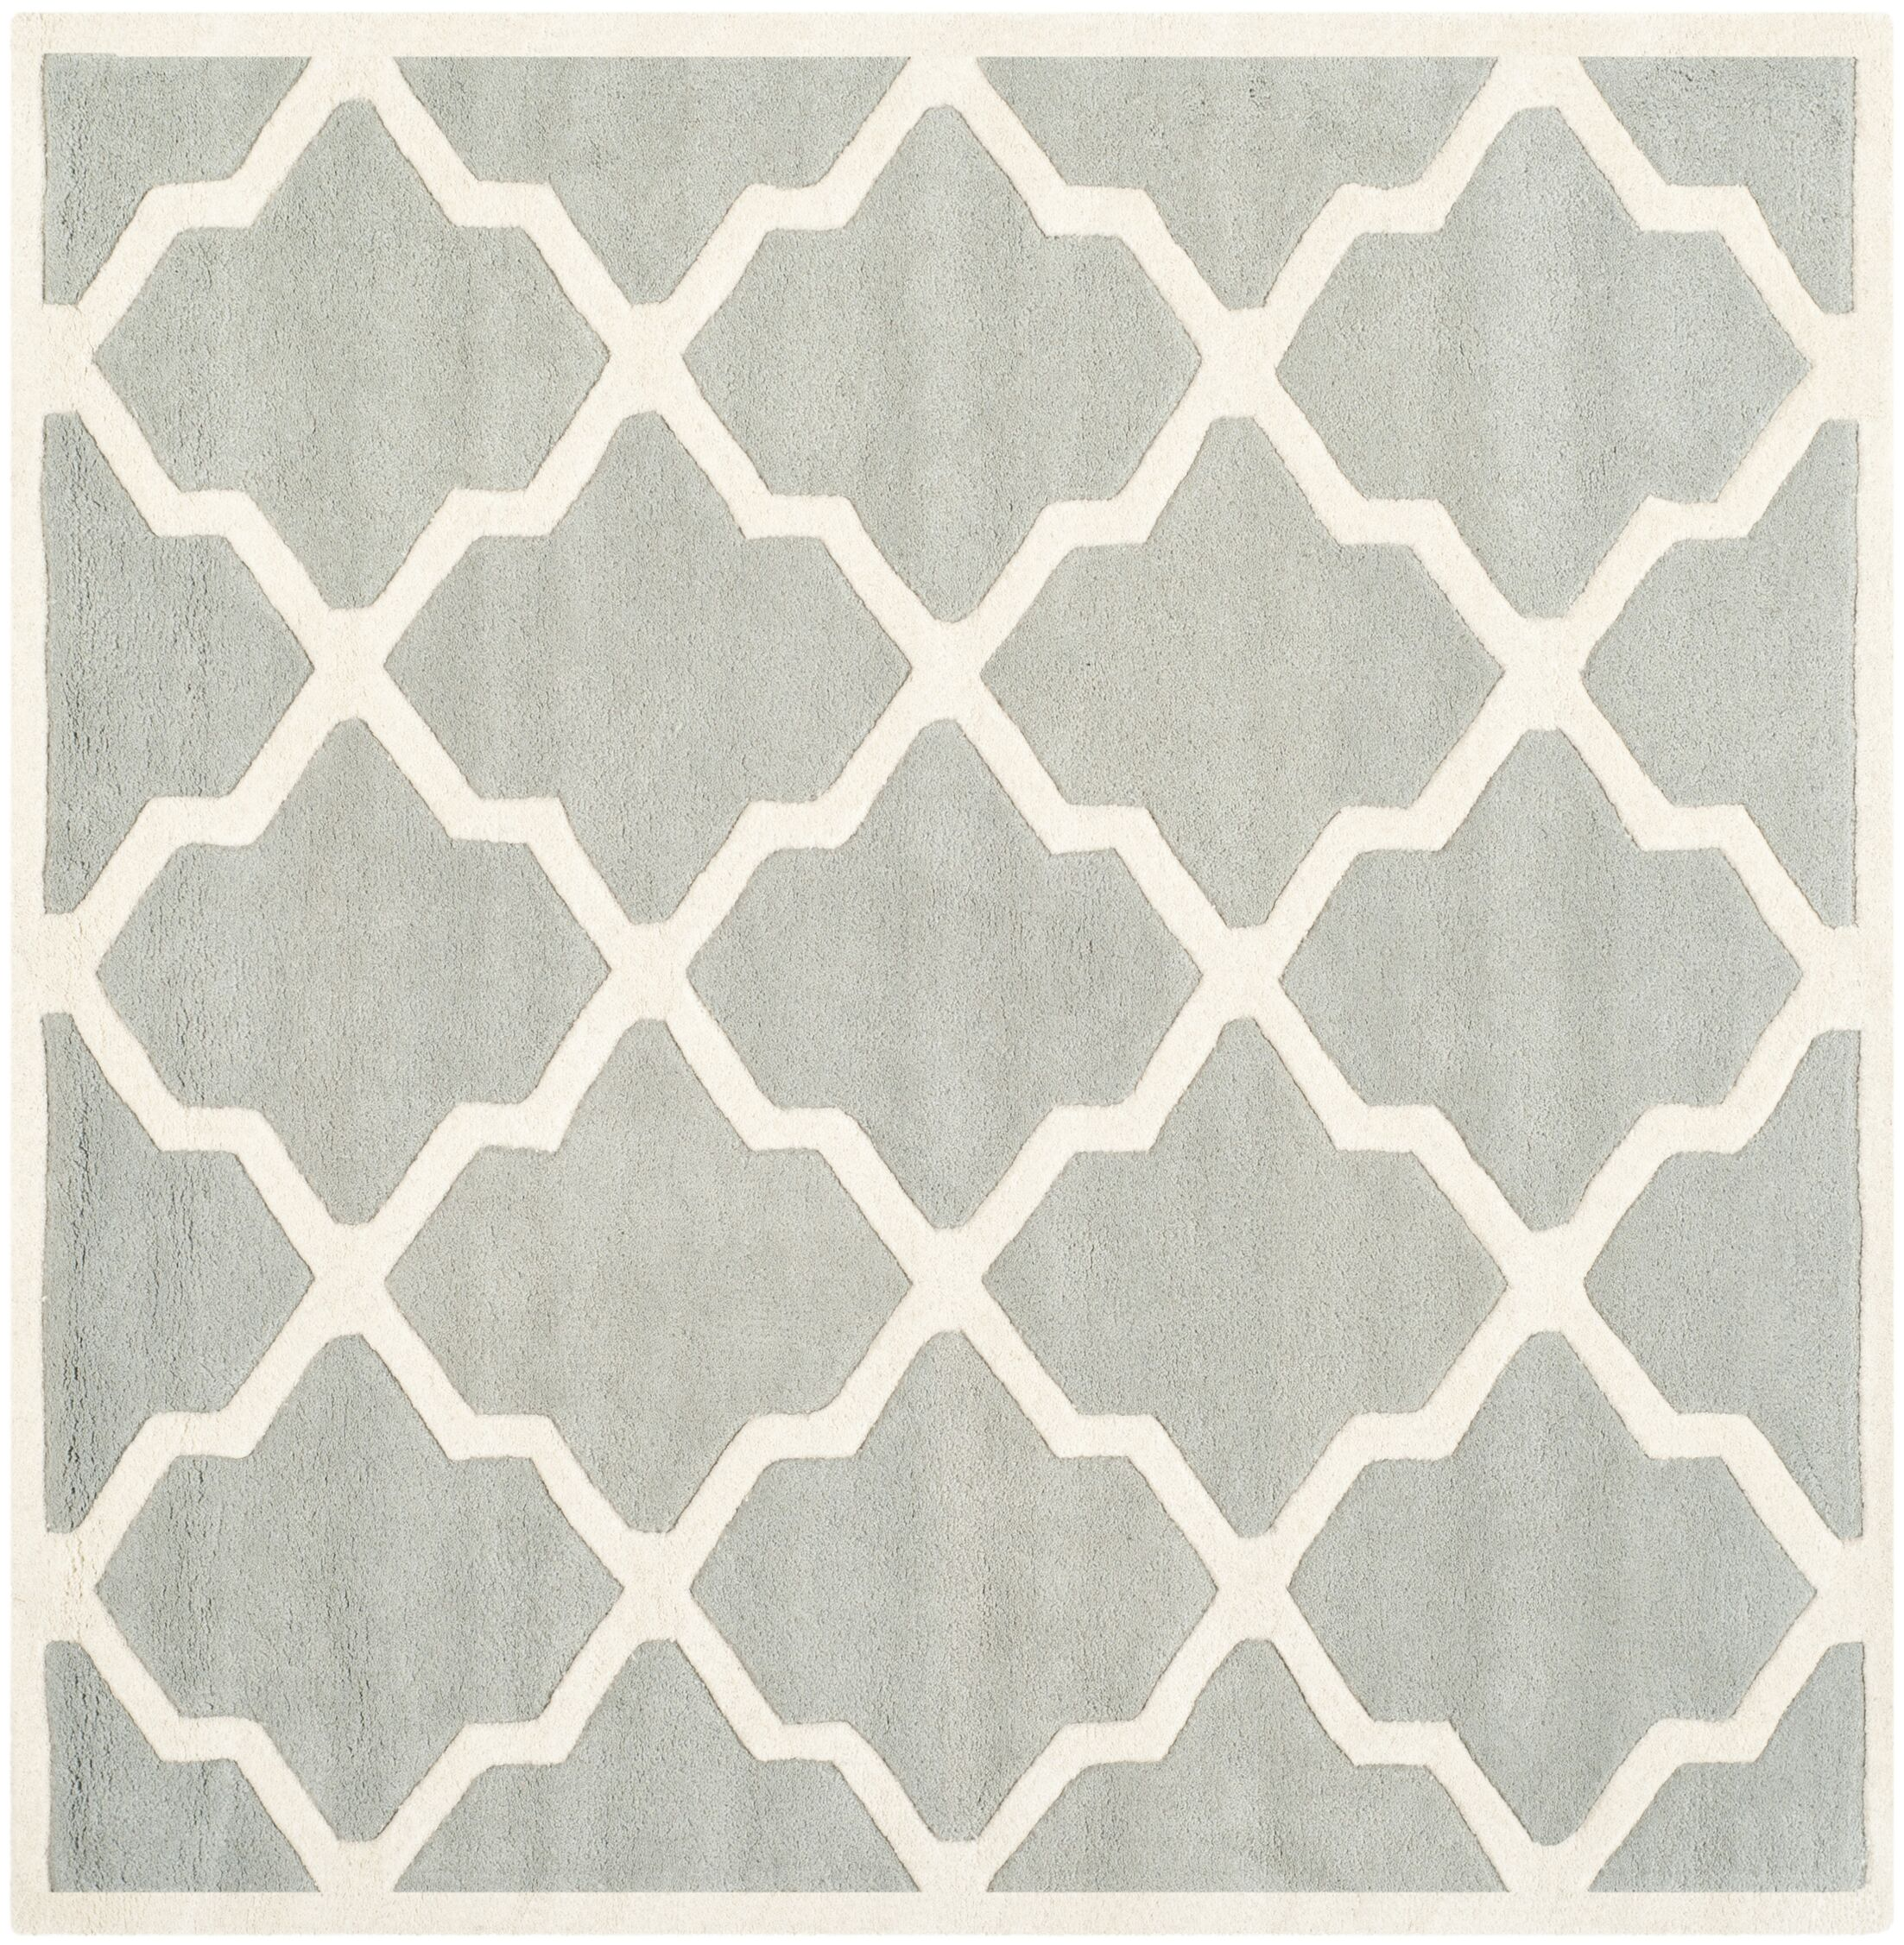 Wilkin Hand-Tufted Wool Gray/Ivory Area Rug Rug Size: Square 5'